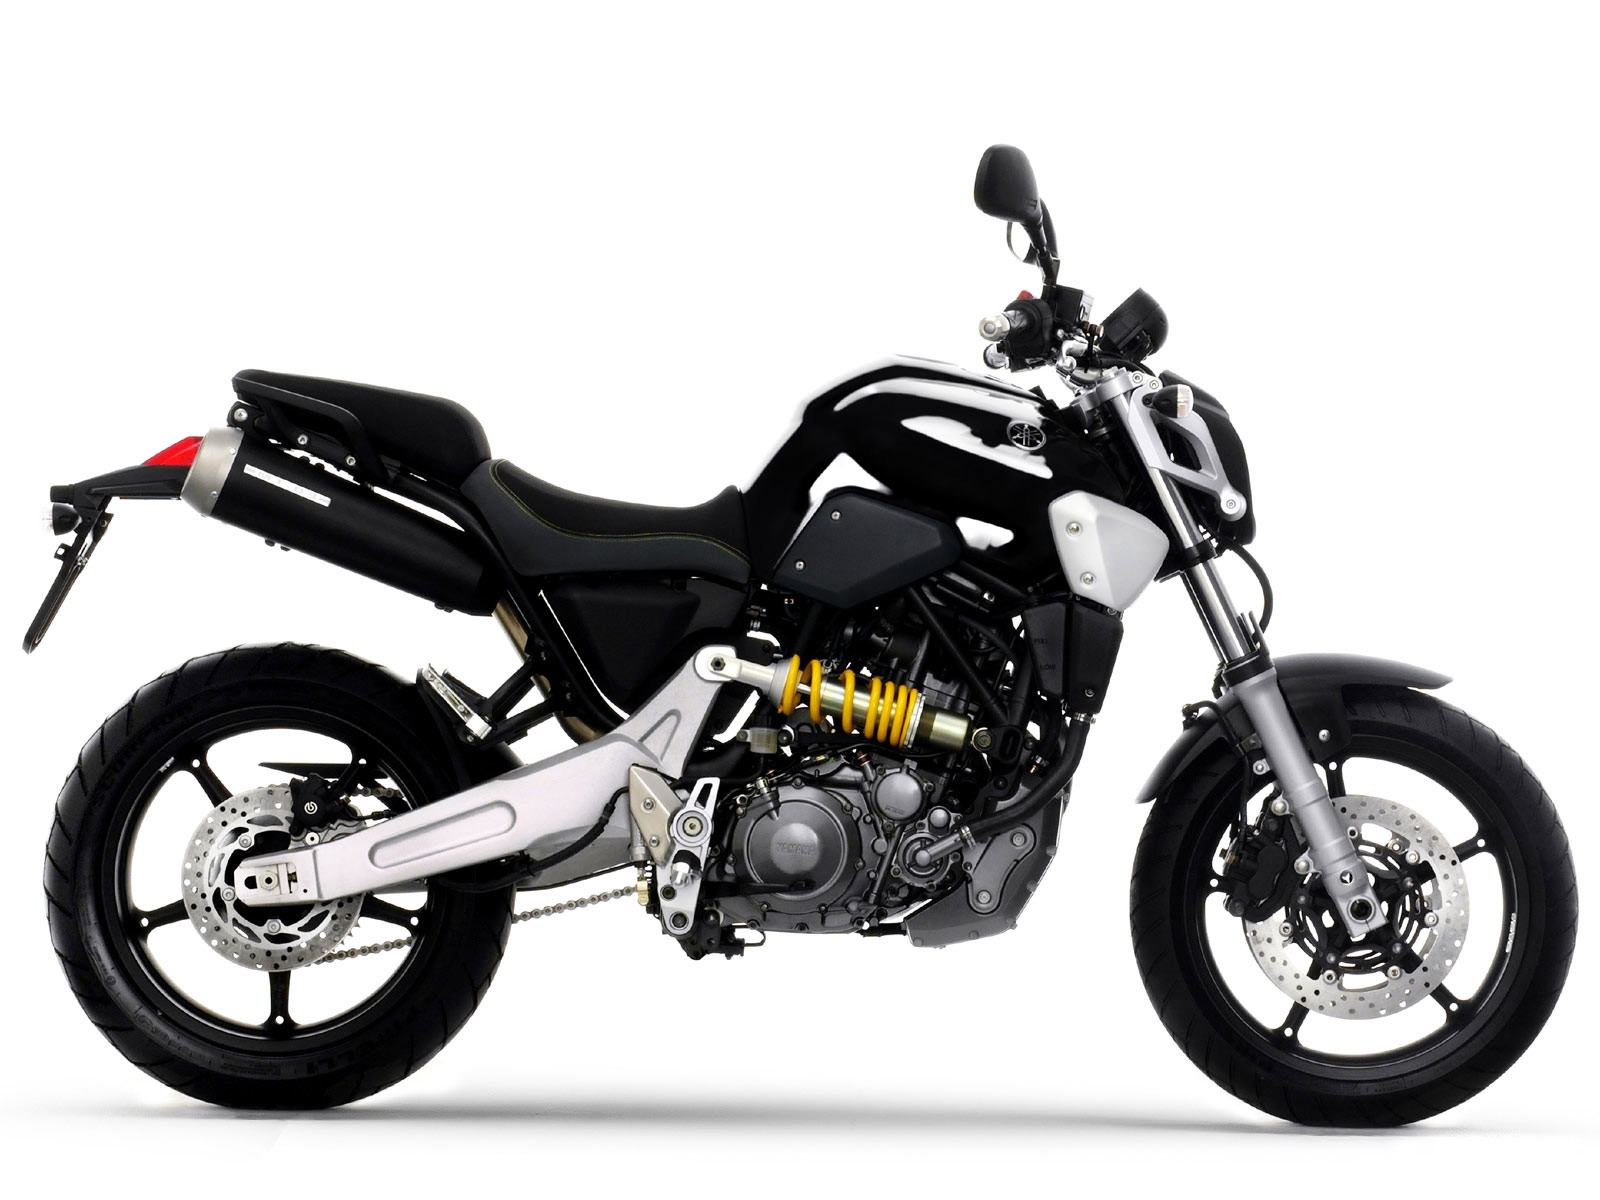 2006 yamaha mt 03 motorcycle photos specifications. Black Bedroom Furniture Sets. Home Design Ideas